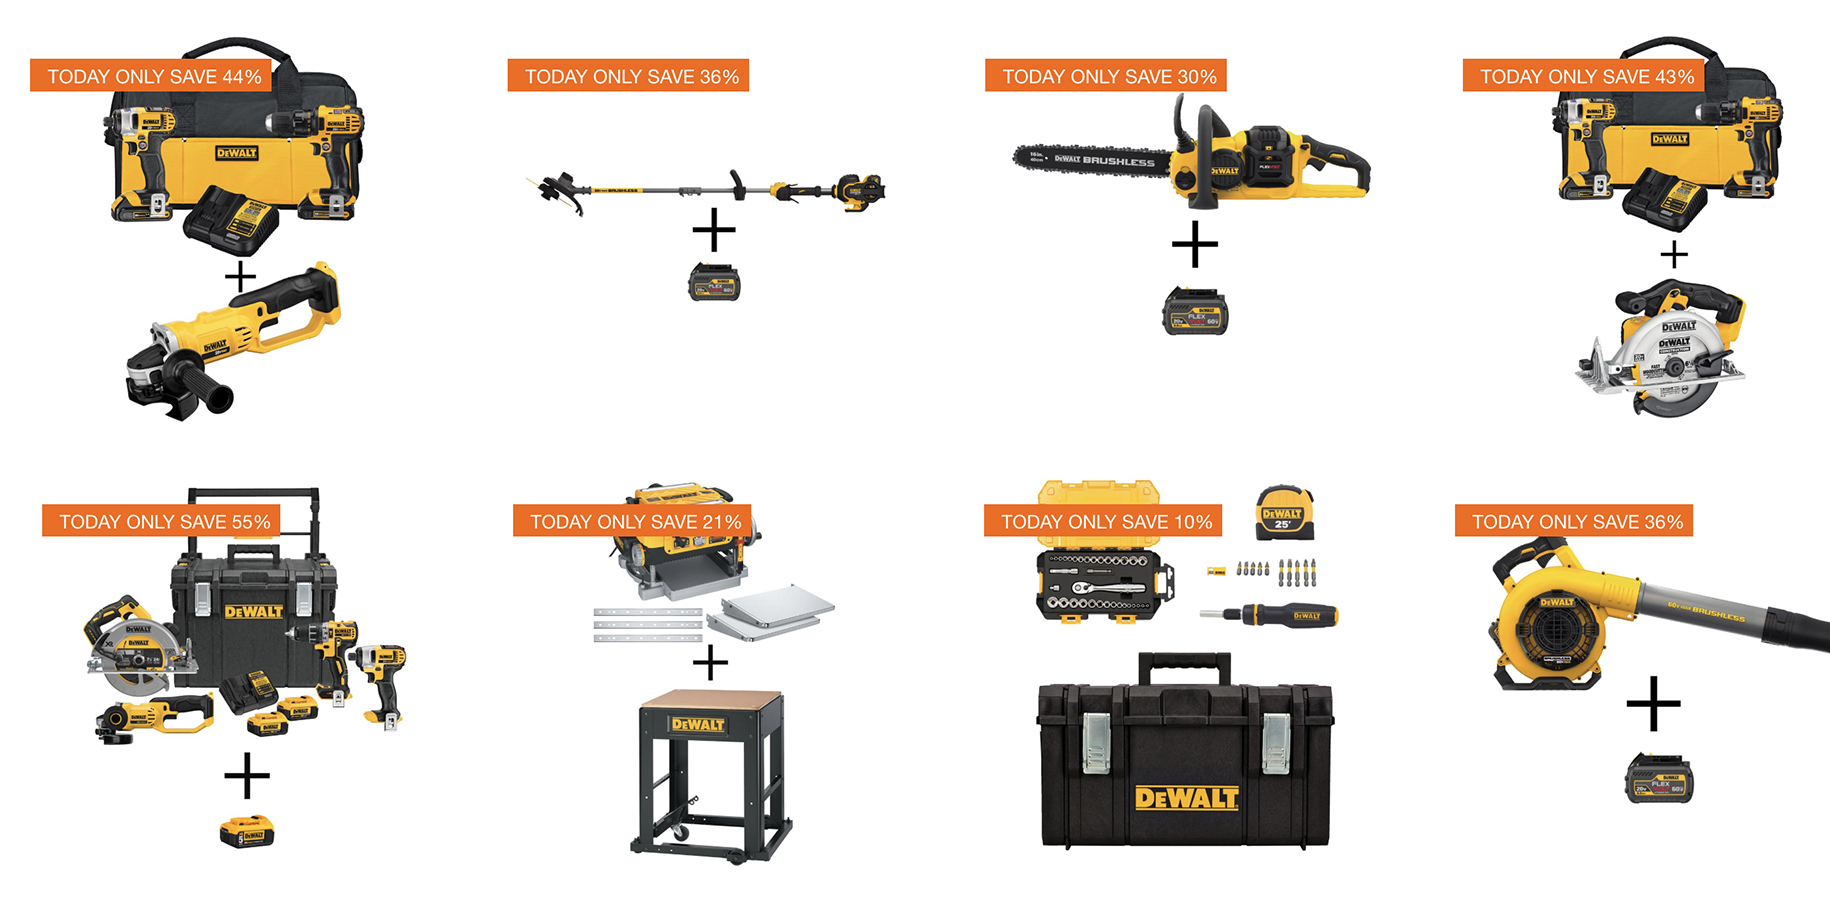 Home Depot 1-day DEWALT power tool sale has deals from $34